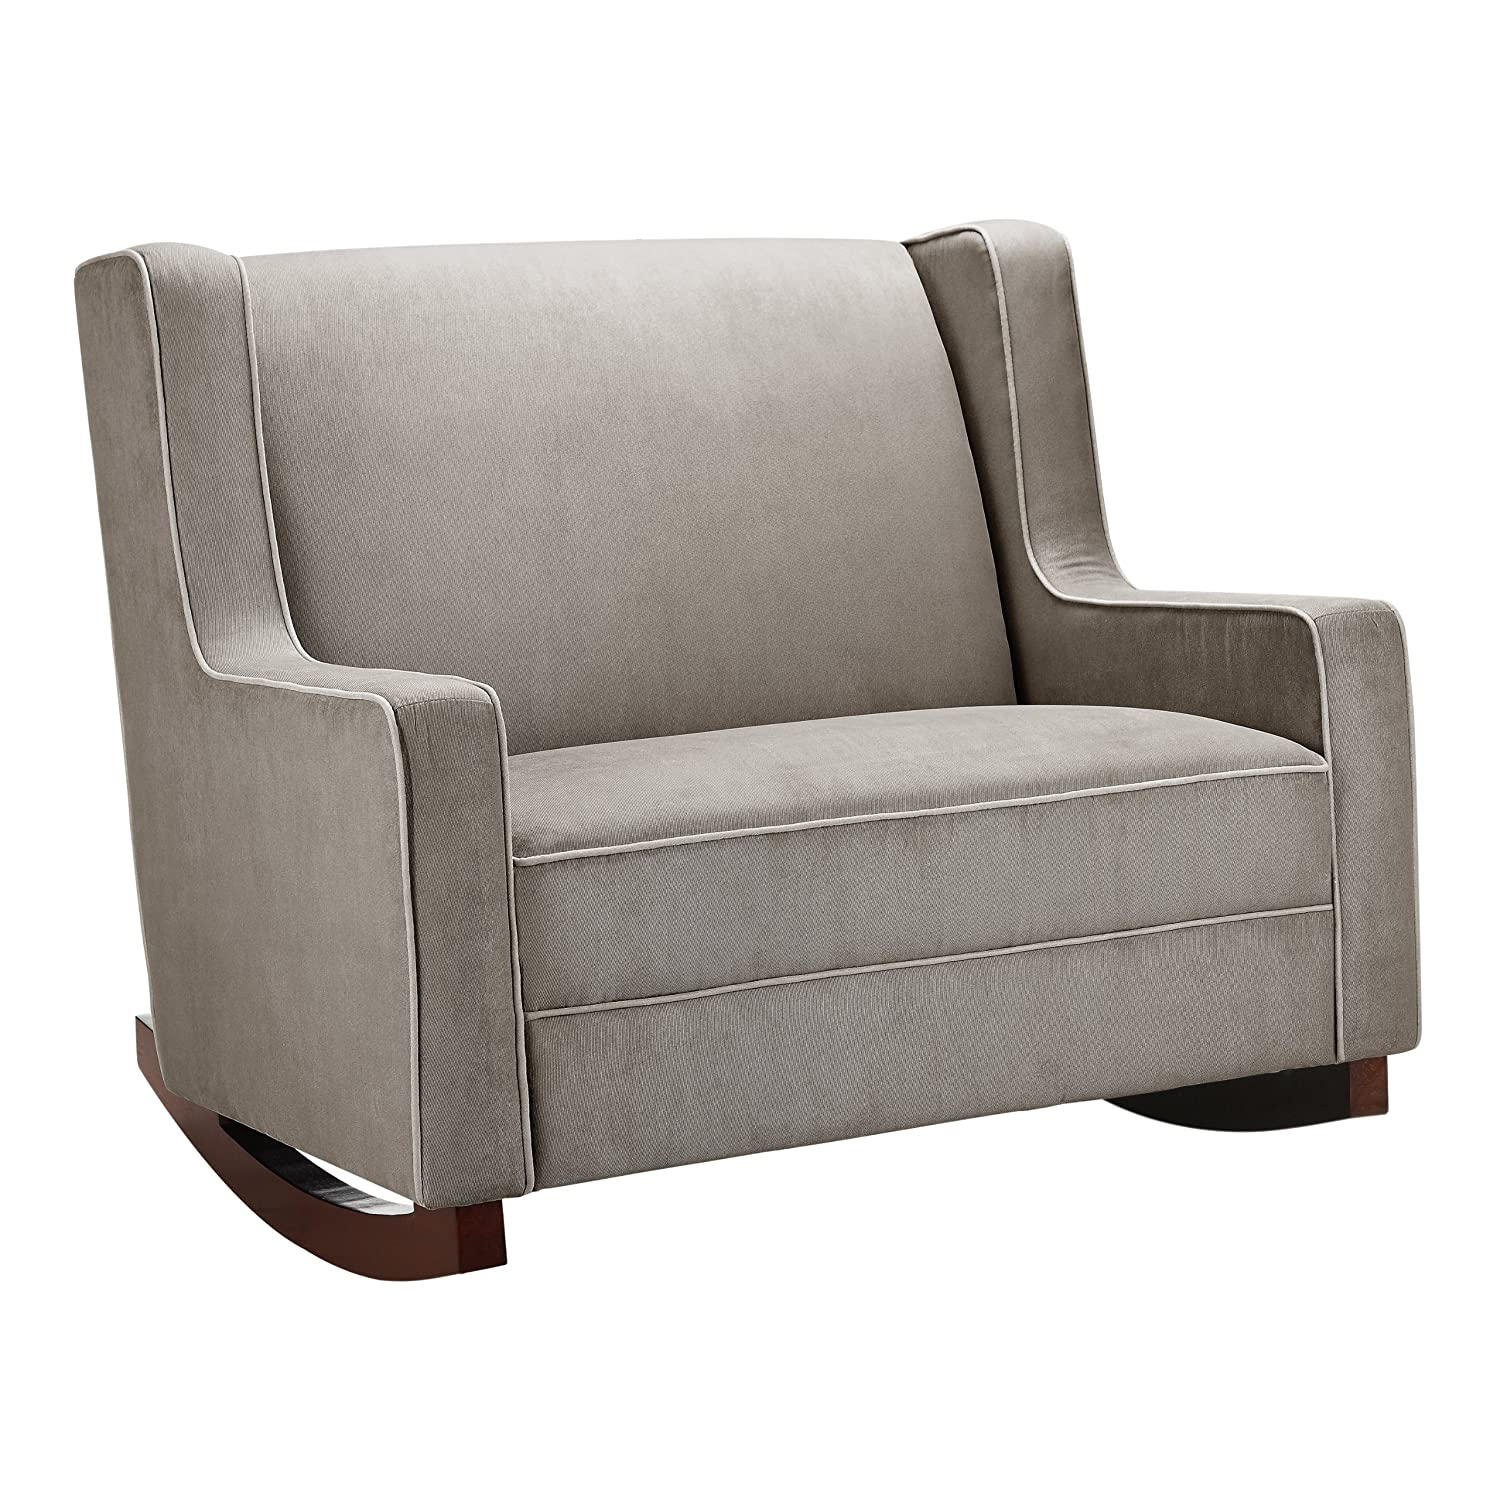 baby relax double rocker dark taupe - Swivel Rocker Chairs For Living Room